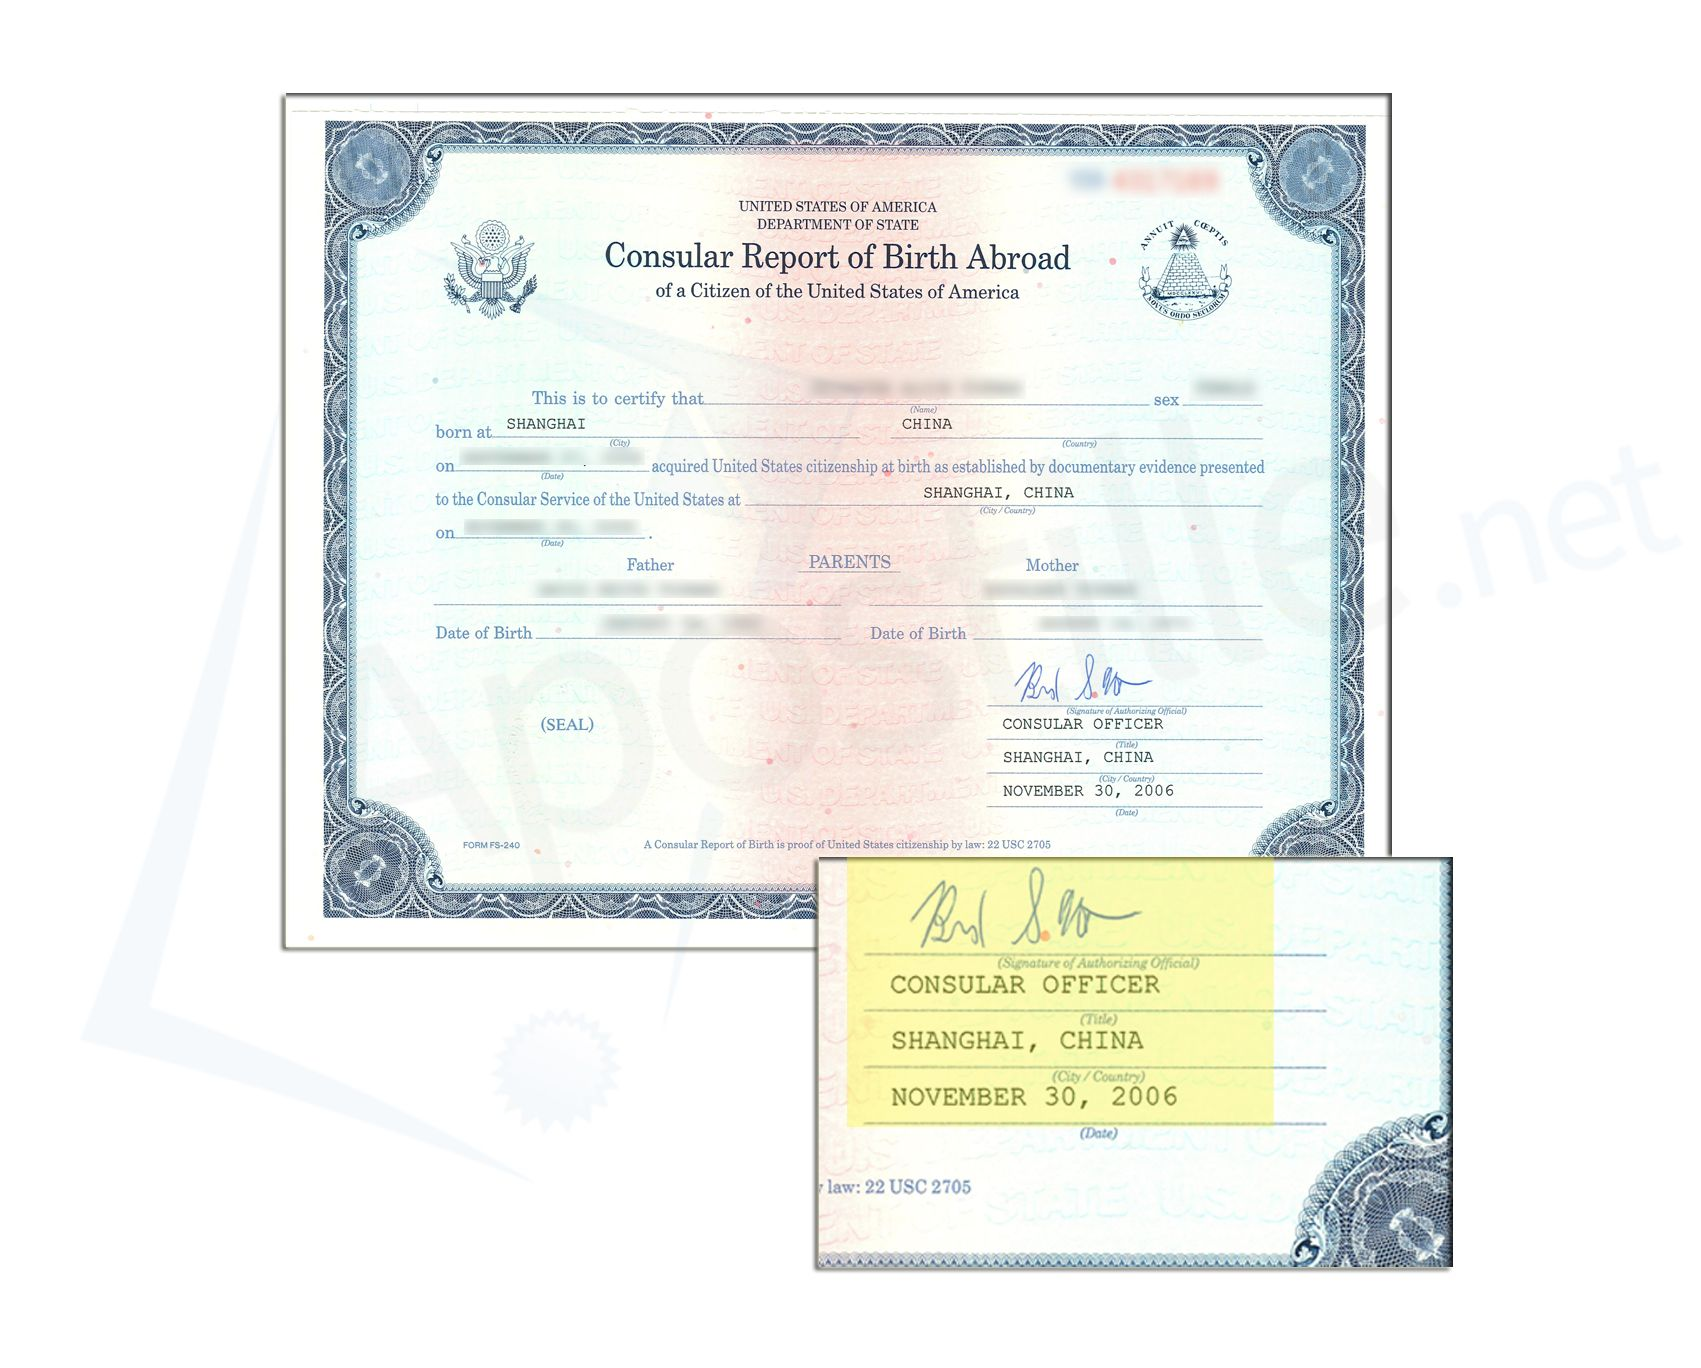 Consular Certificate Of Birth Abroad Signed By The Us Consular